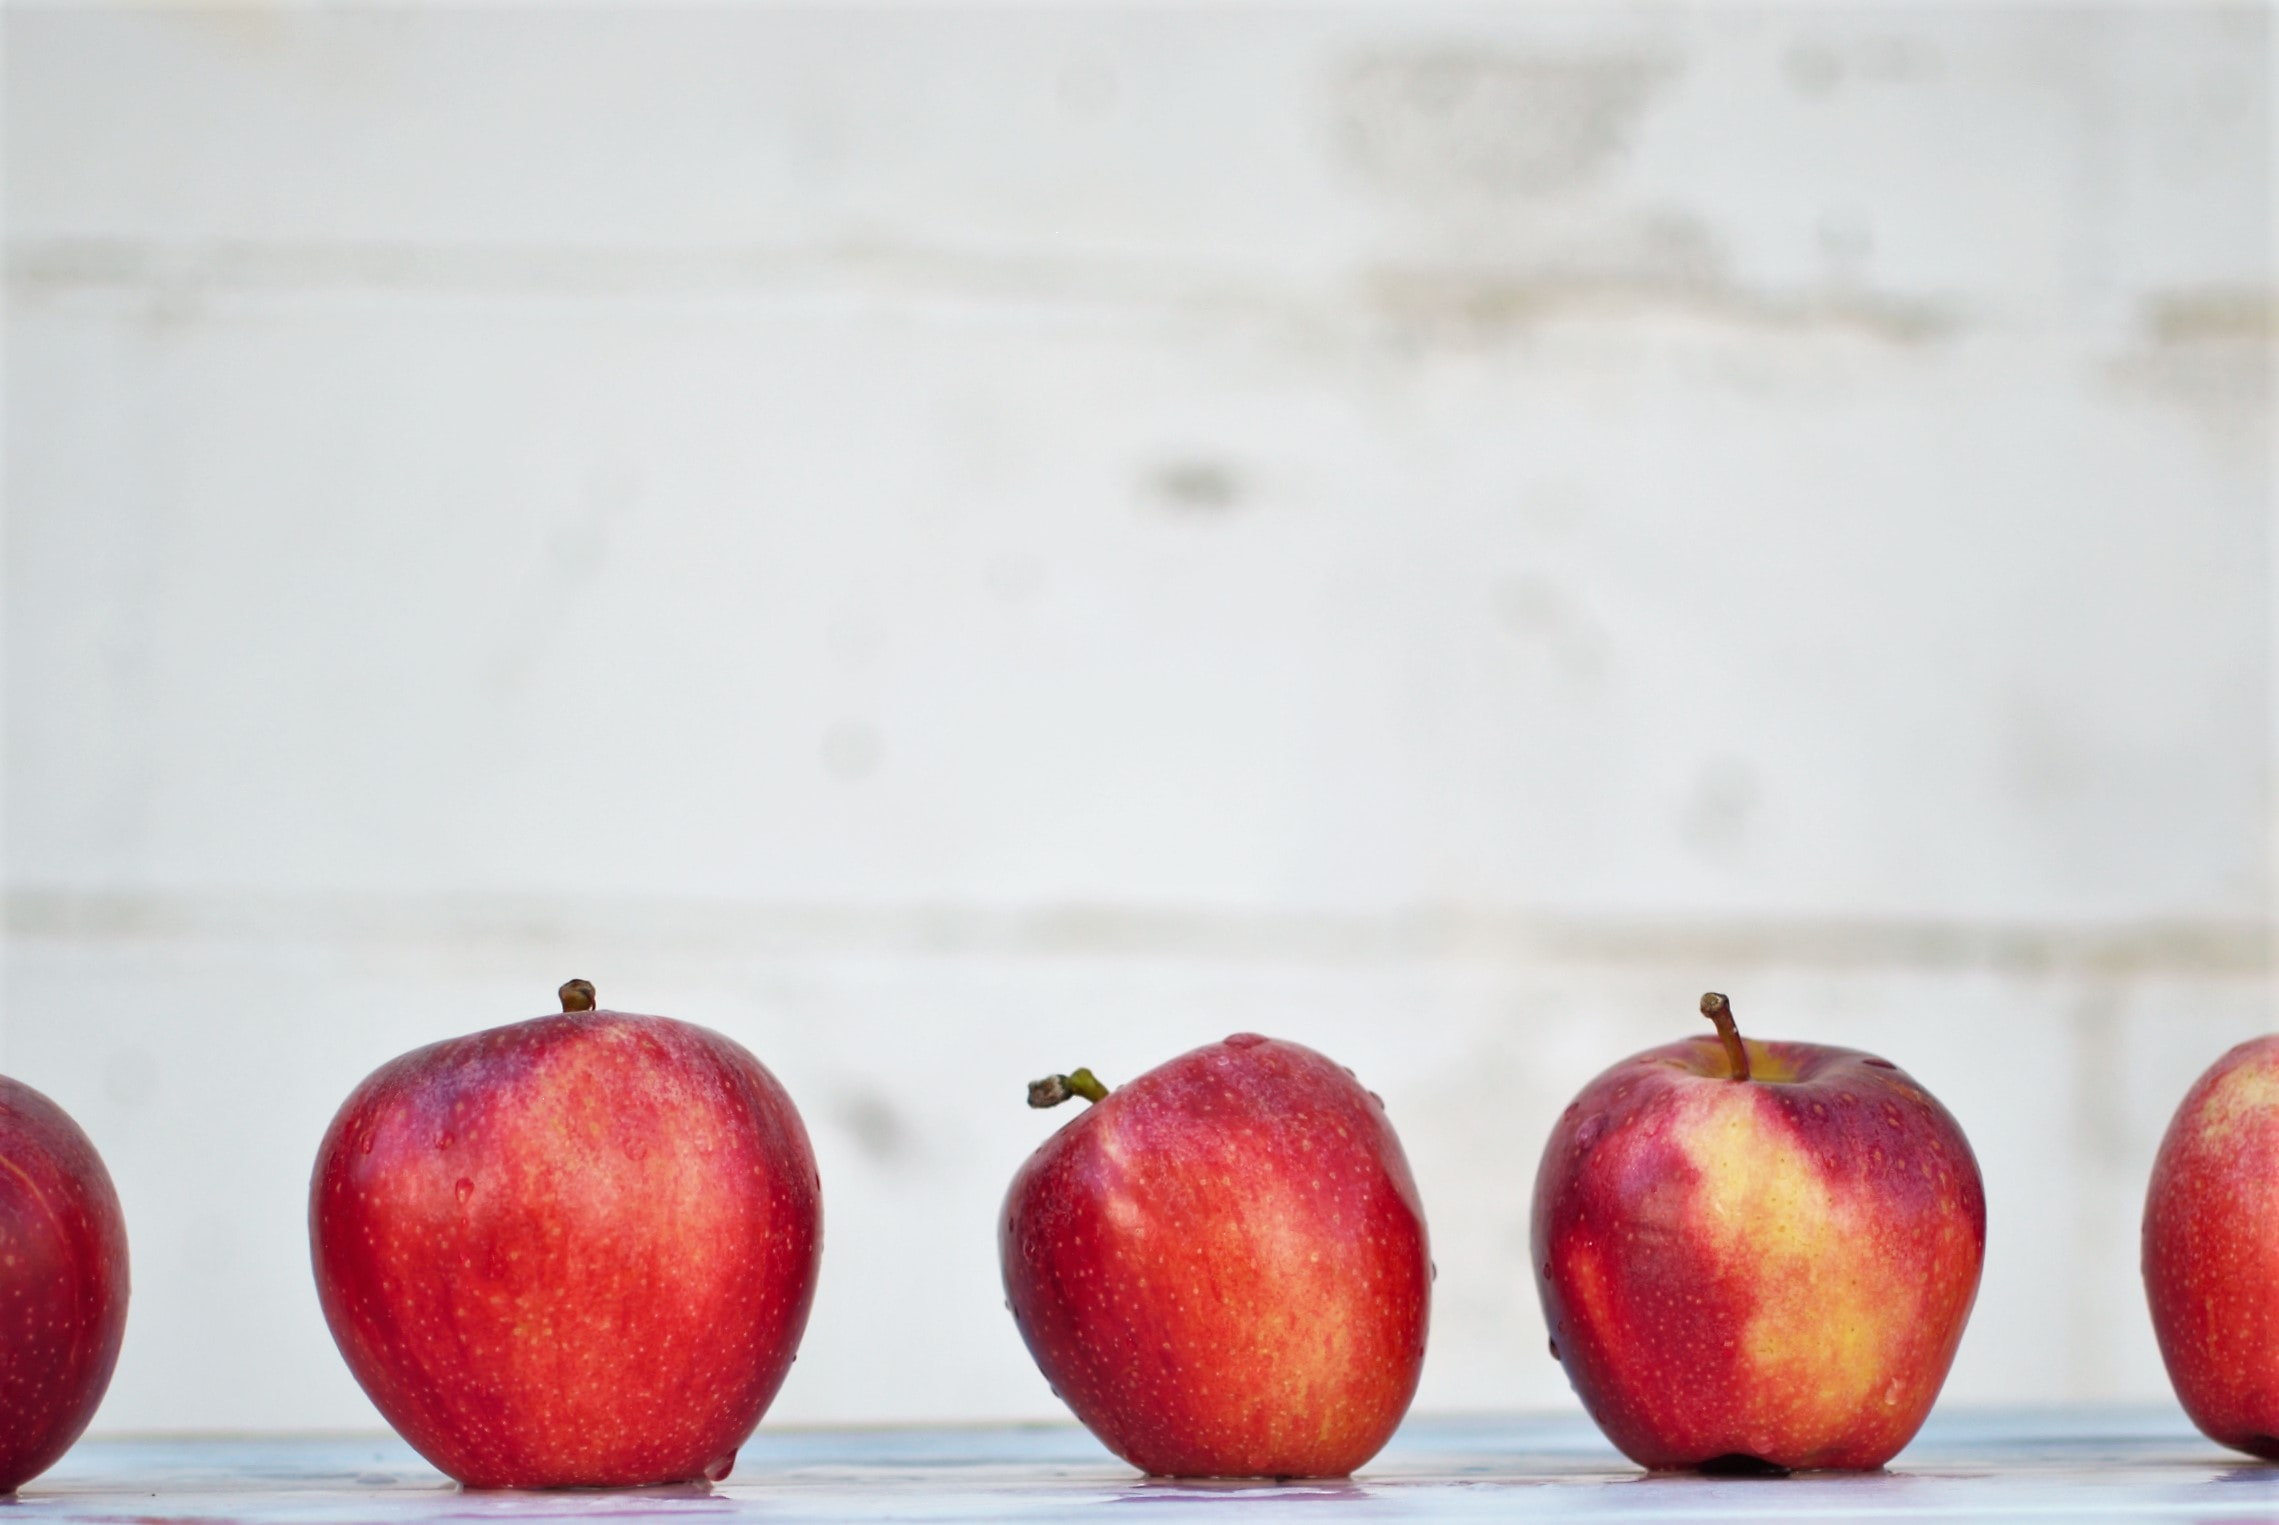 five red apples on white surface